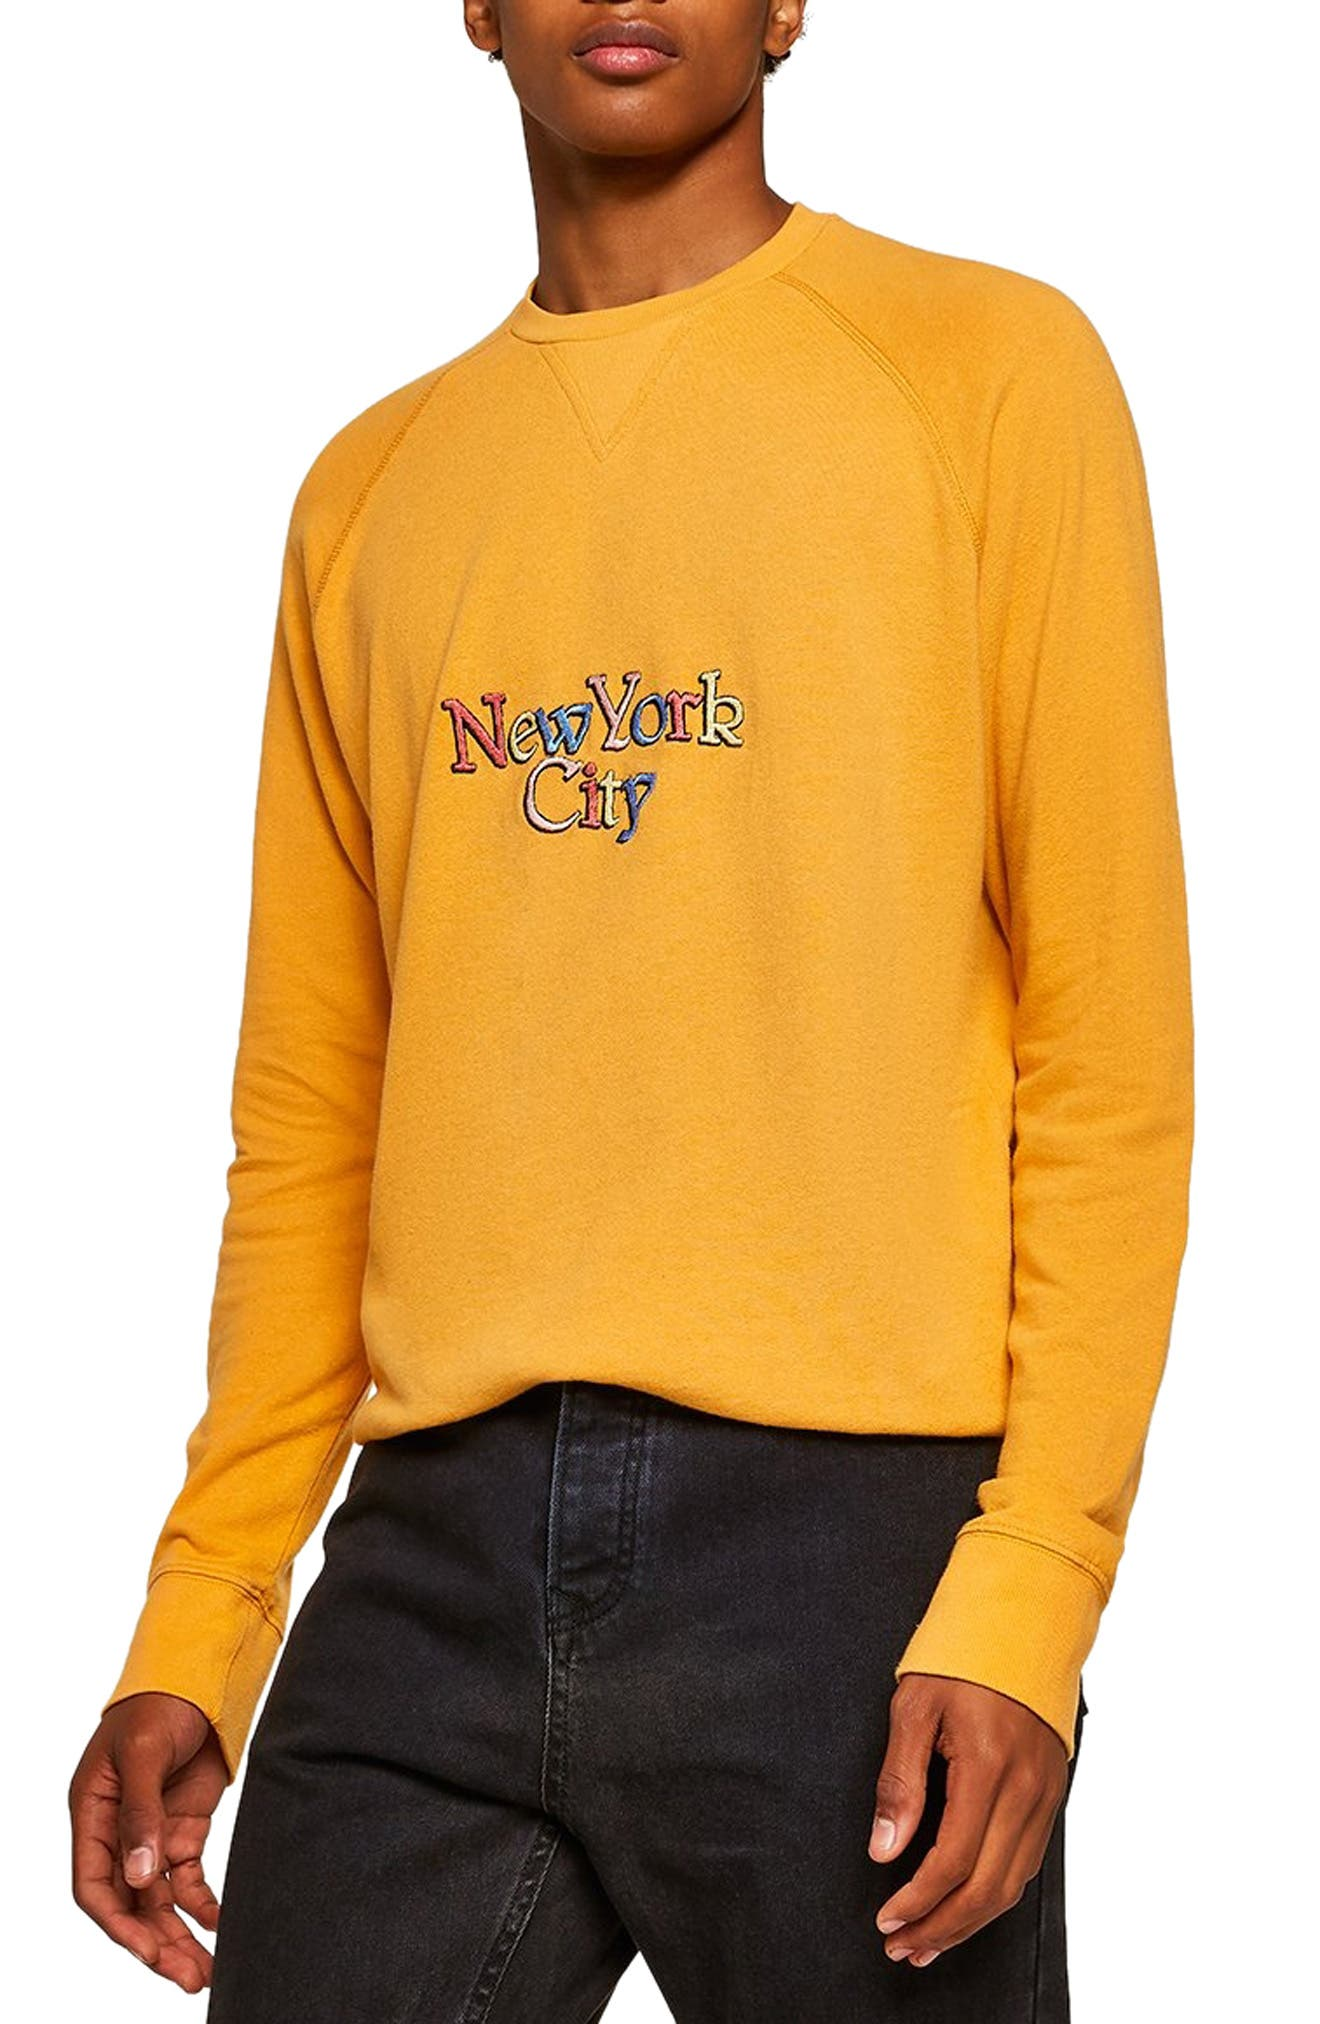 New York Classic Sweater,                         Main,                         color, 700